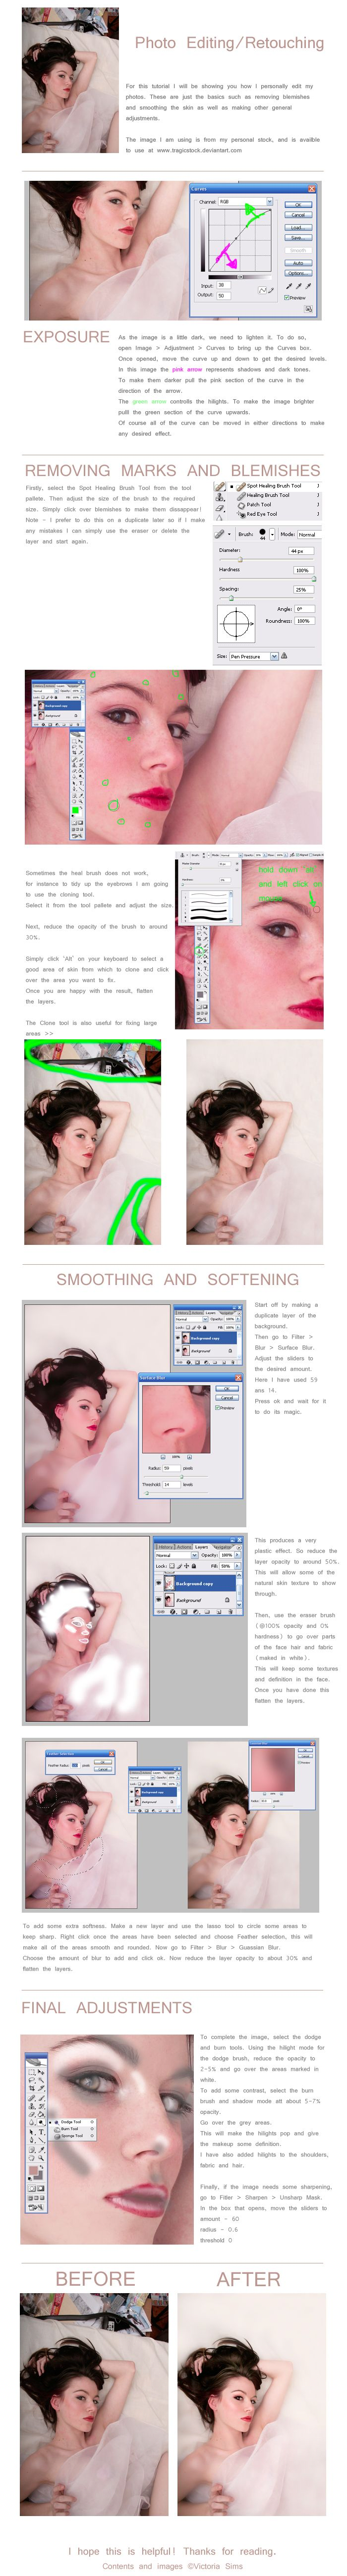 Basic Photo Editing Tutorial by `TheTragicTruth-Of-Me on deviantART (for manual editing- no actions)